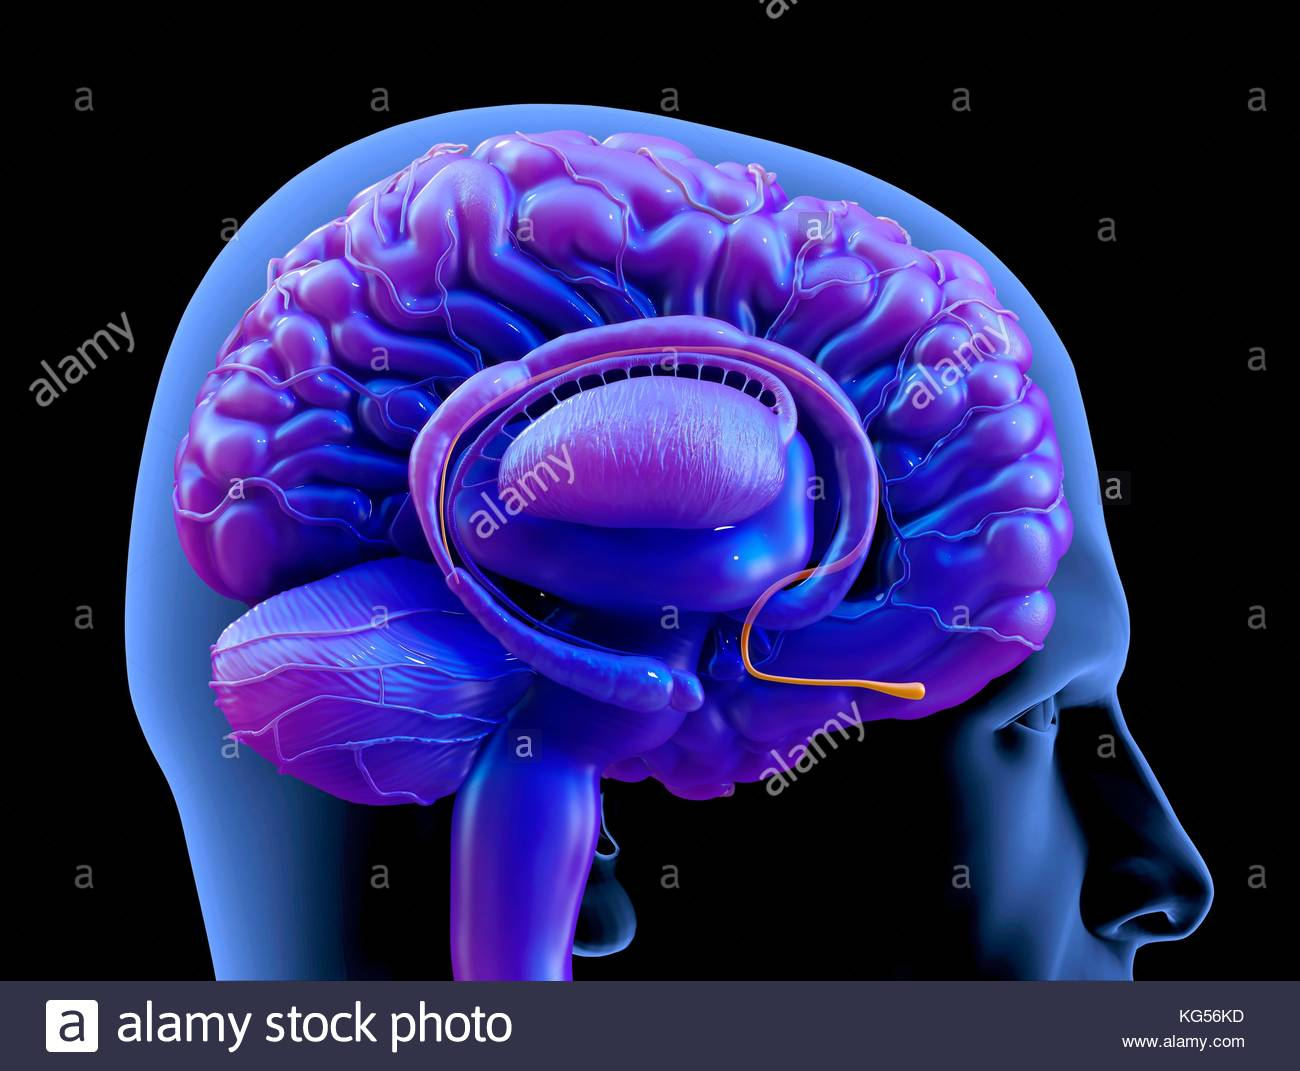 https://www.alamy.com/stock-image-human-brain-olfactory-bulb-illustration-164842817.html?pv=1&stamp=2&imageid=E18B4B6D-951B-4158-A93F-CD9DC660EA75&p=96894&n=0&orientation=0&pn=1&searchtype=0&IsFromSearch=1&srch=foo%3dbar%26st%3d0%26pn%3d1%26ps%3d100%26sor